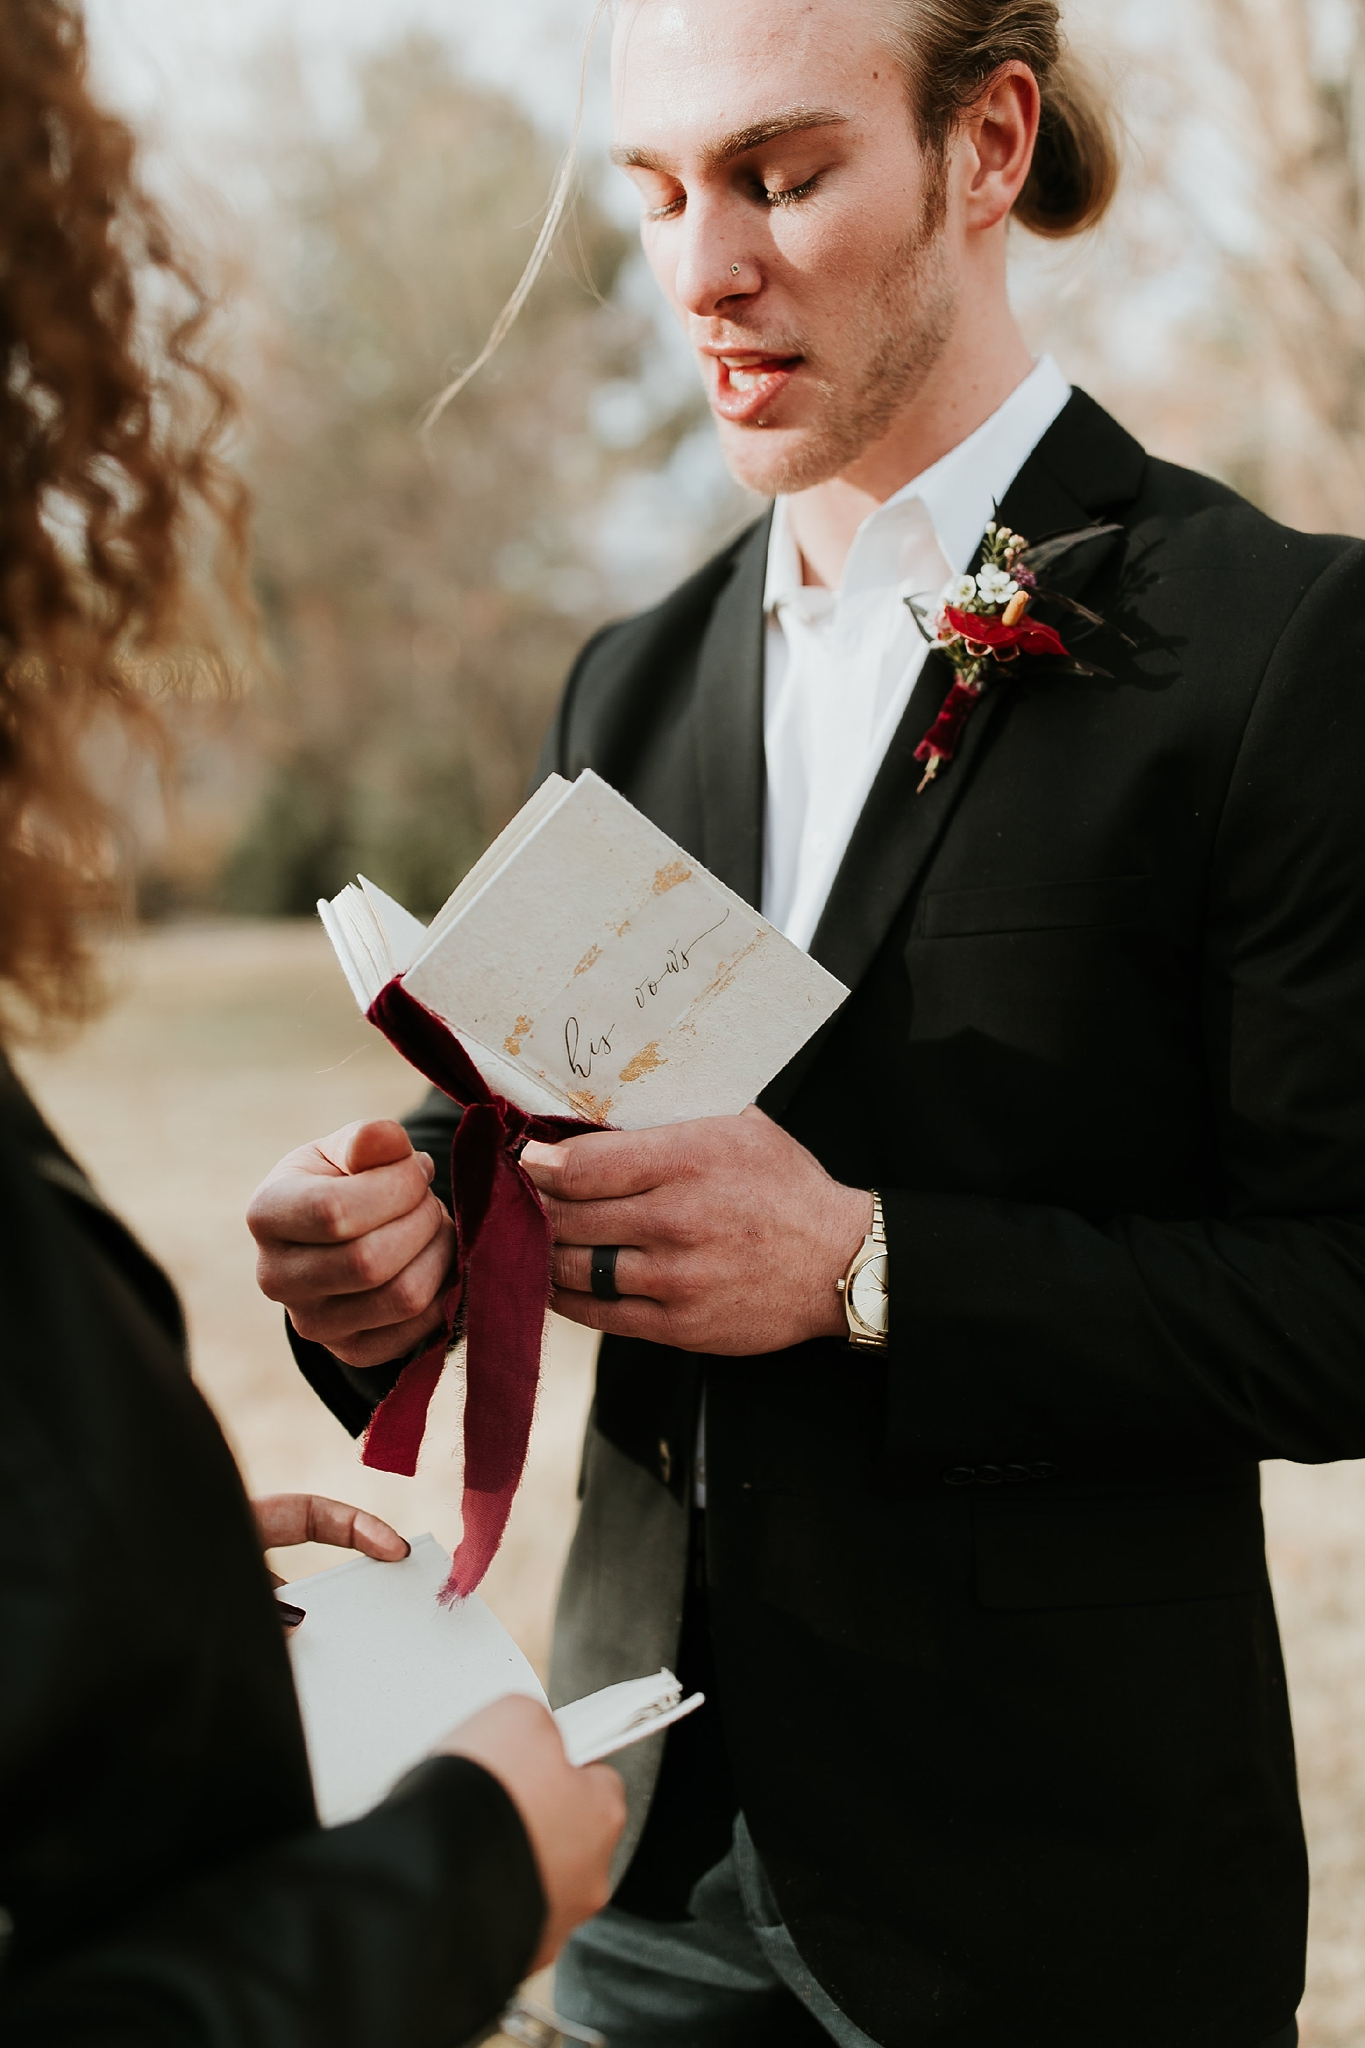 Alicia+lucia+photography+-+albuquerque+wedding+photographer+-+santa+fe+wedding+photography+-+new+mexico+wedding+photographer+-+new+mexico+wedding+-+wedding+vows+-+writing+your+own+vows+-+wedding+inspo_0040.jpg